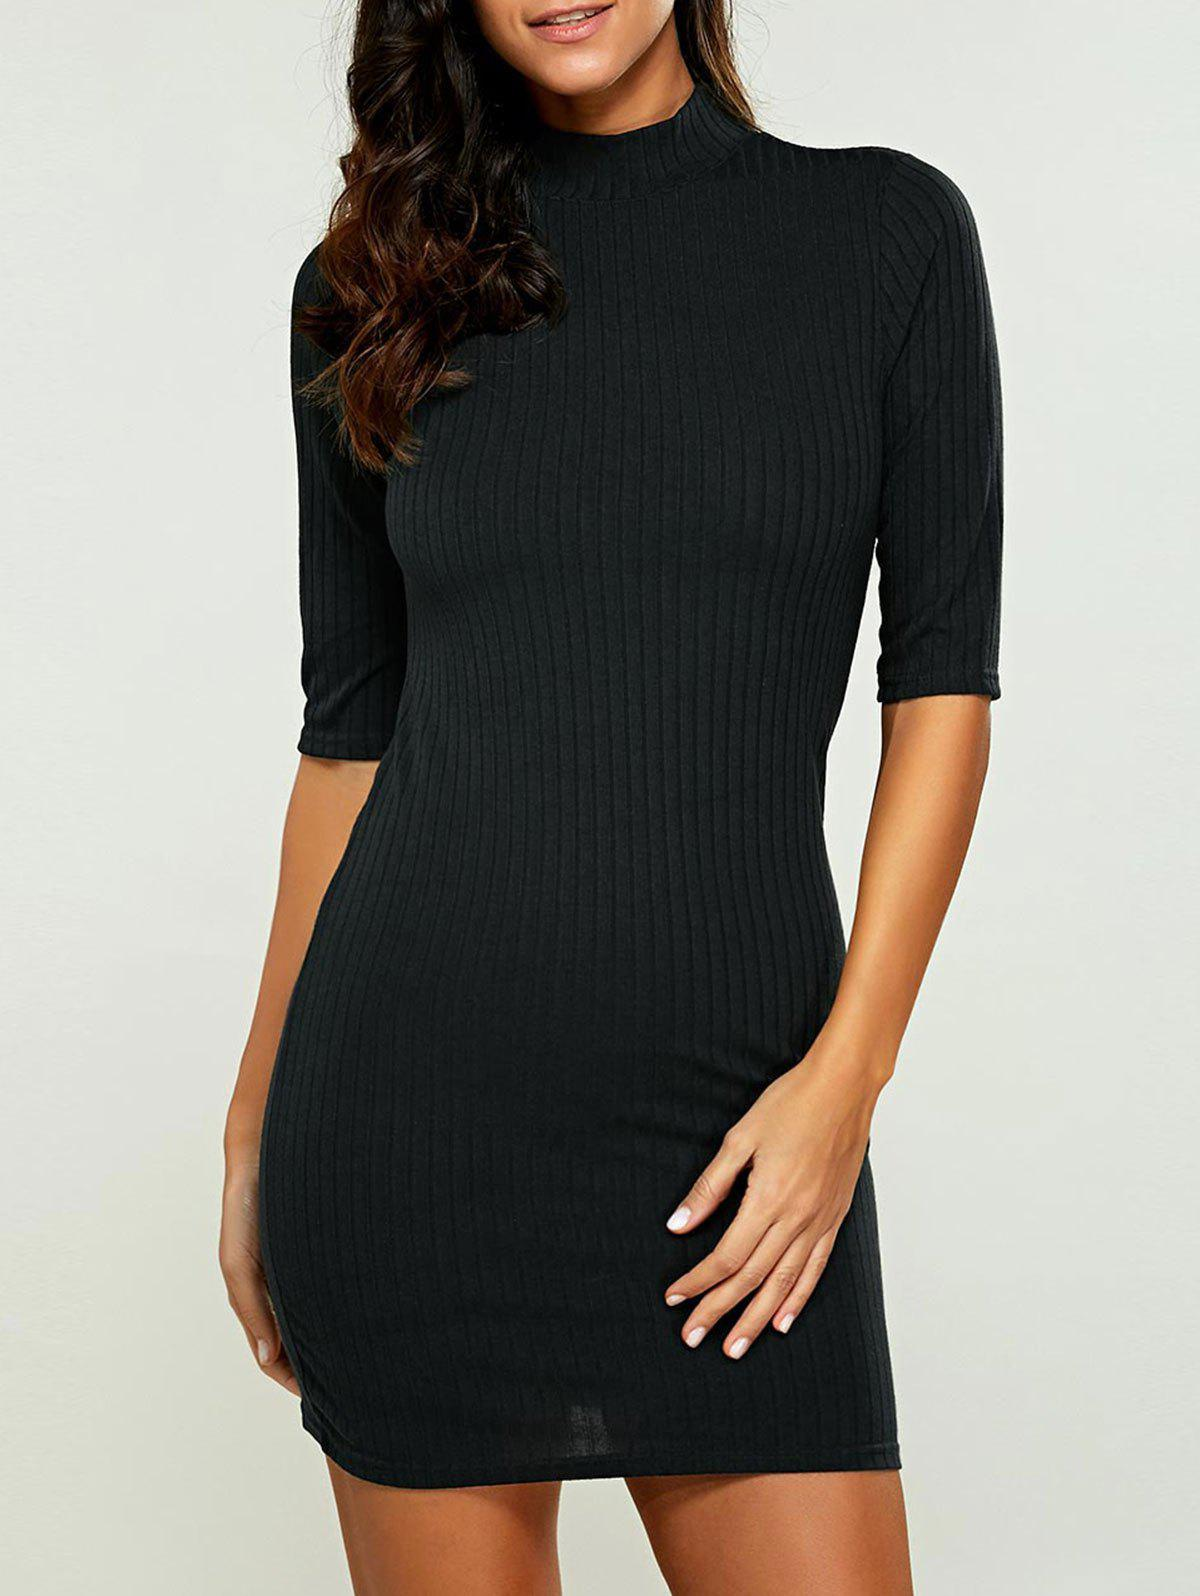 High Neck Bodycon Ribbed Knit T Shirt Dress bar iii new women s small s black ponte knit lace trim ribbed bodycon dress $79